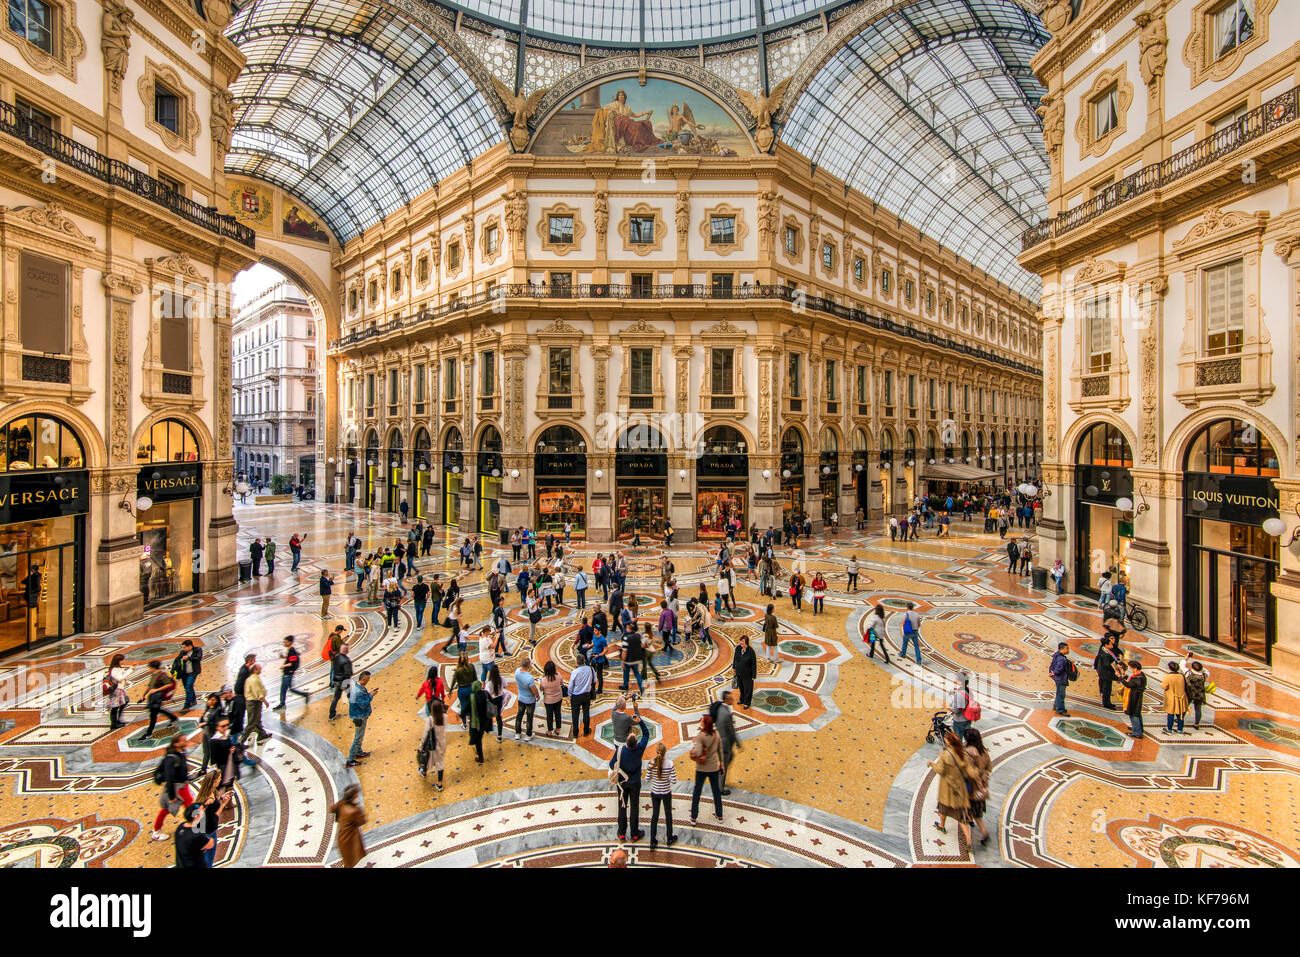 Galleria Vittorio Emanuele II shopping mall, Milan, Lombardy, Italy - Stock Image